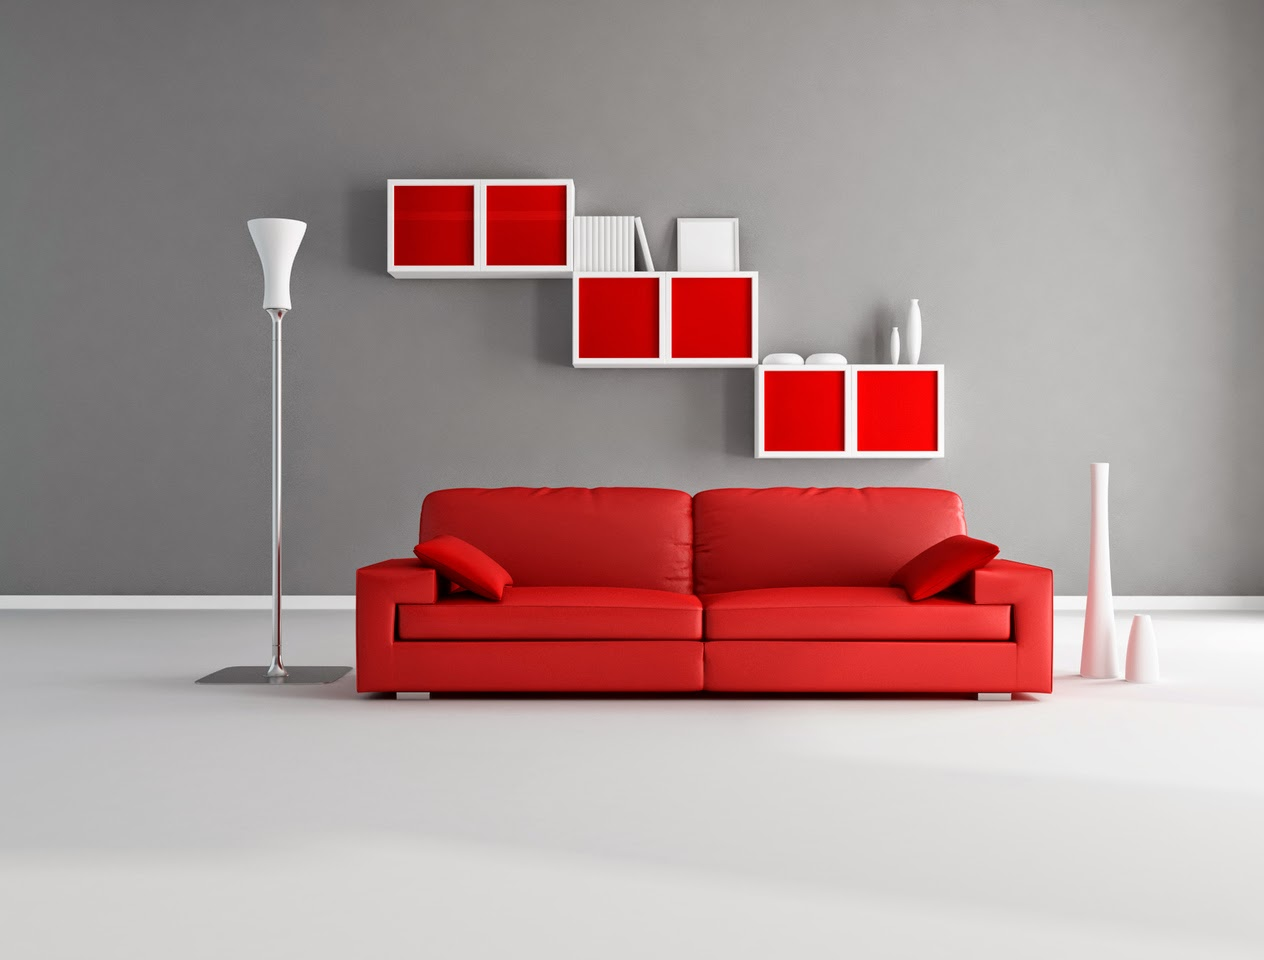 Muebles x muebles decorar la sala en color rojo for Casas de sofas en montigala